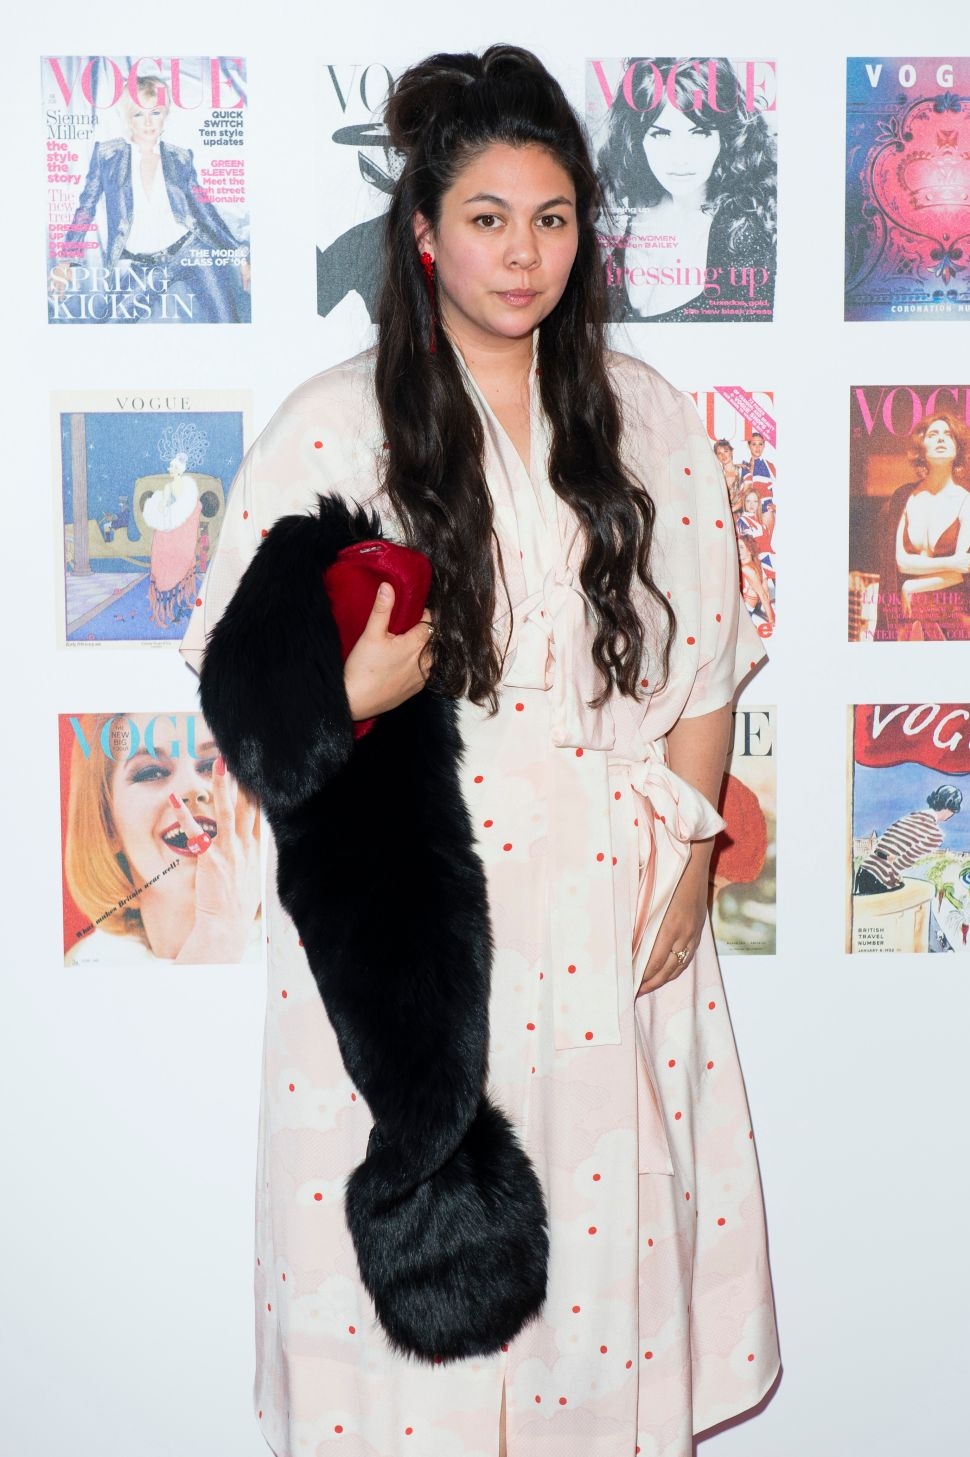 Simone Rocha Signs Lease for First US Store in Soho